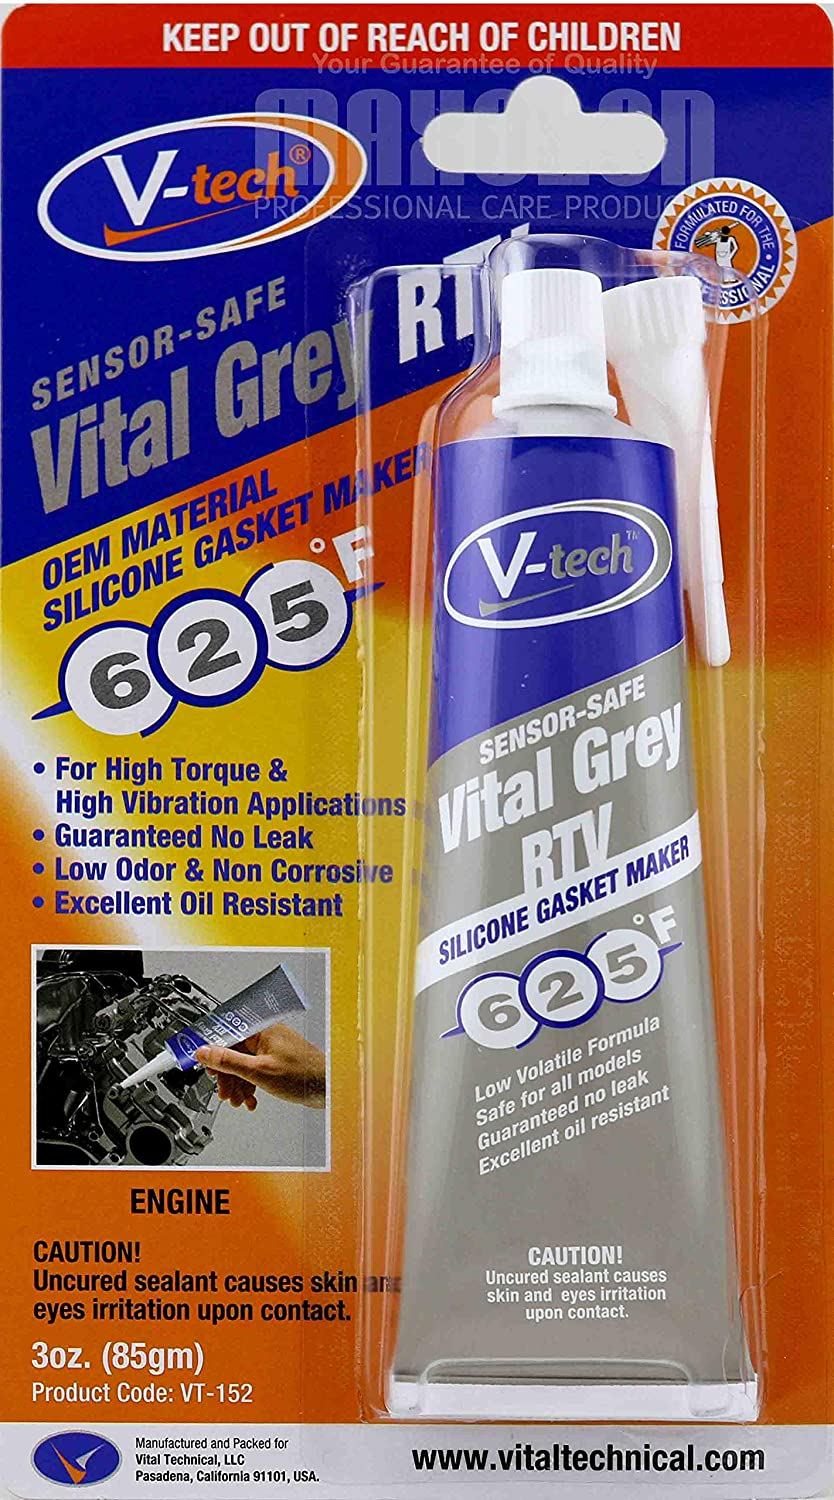 V-Tech Gasket Makers Silicone Instant Gasket Maker 85g Vital Black RTV Vital Technical